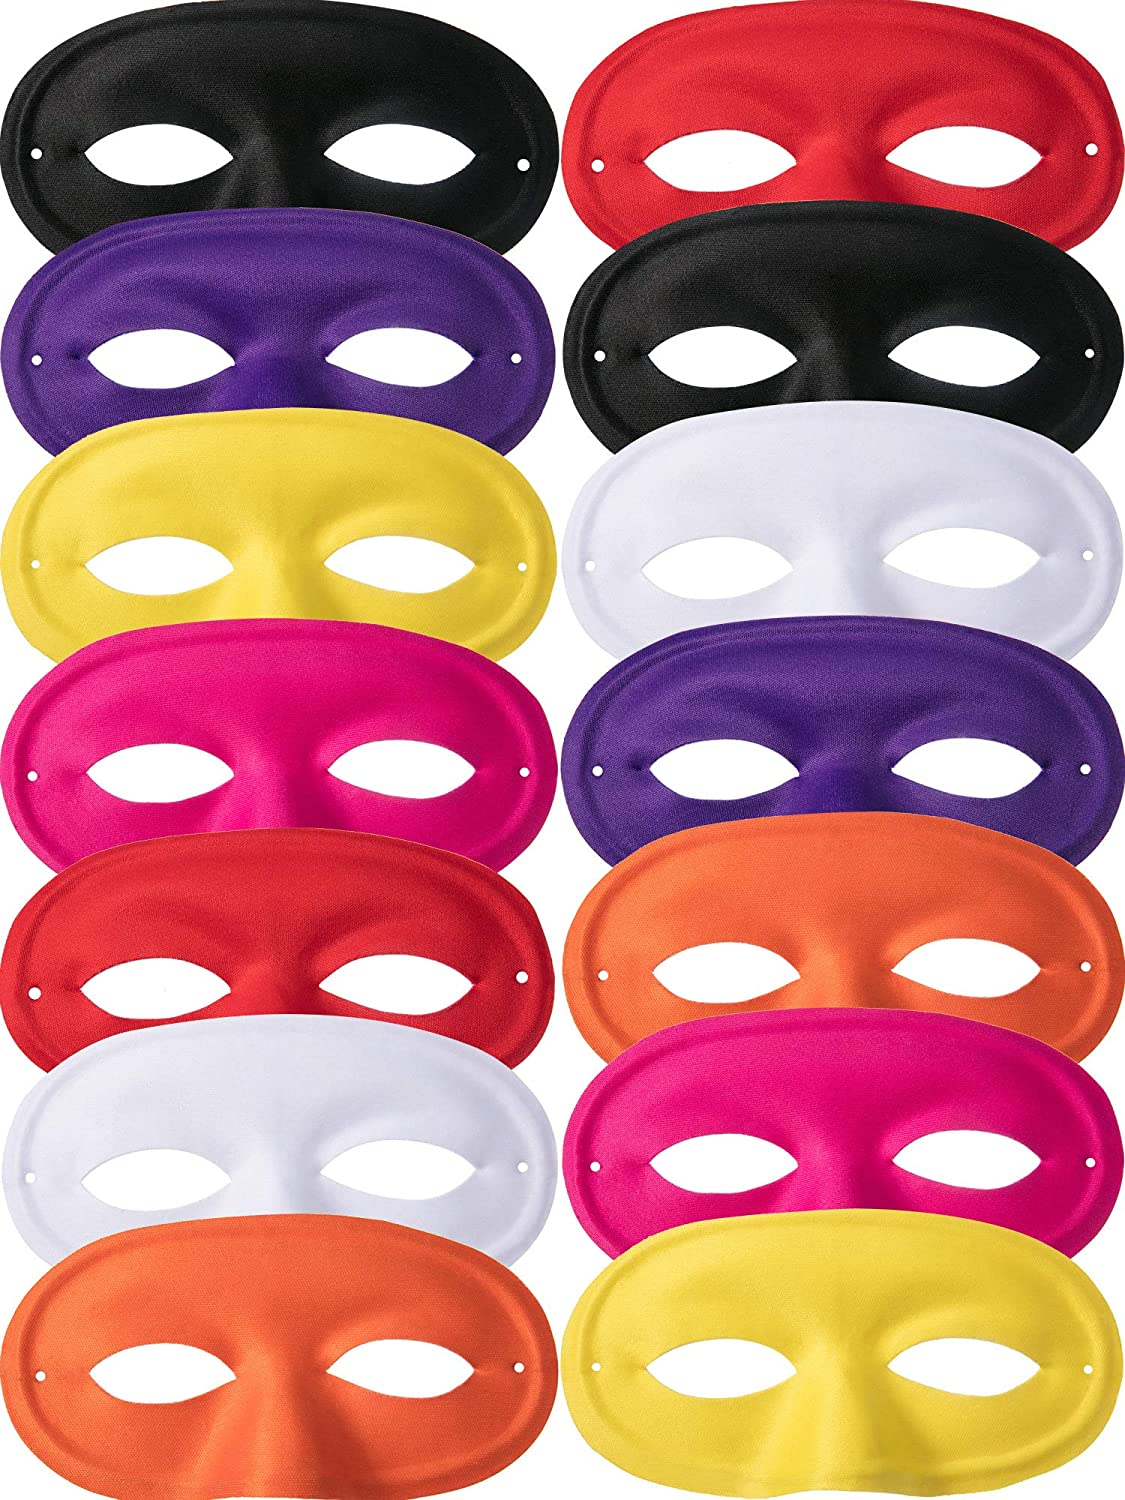 Bememo 14 Pieces Kids Half Masks Masquerade Mask Kids Christmas Mask for Children Party Cosplay Accessory